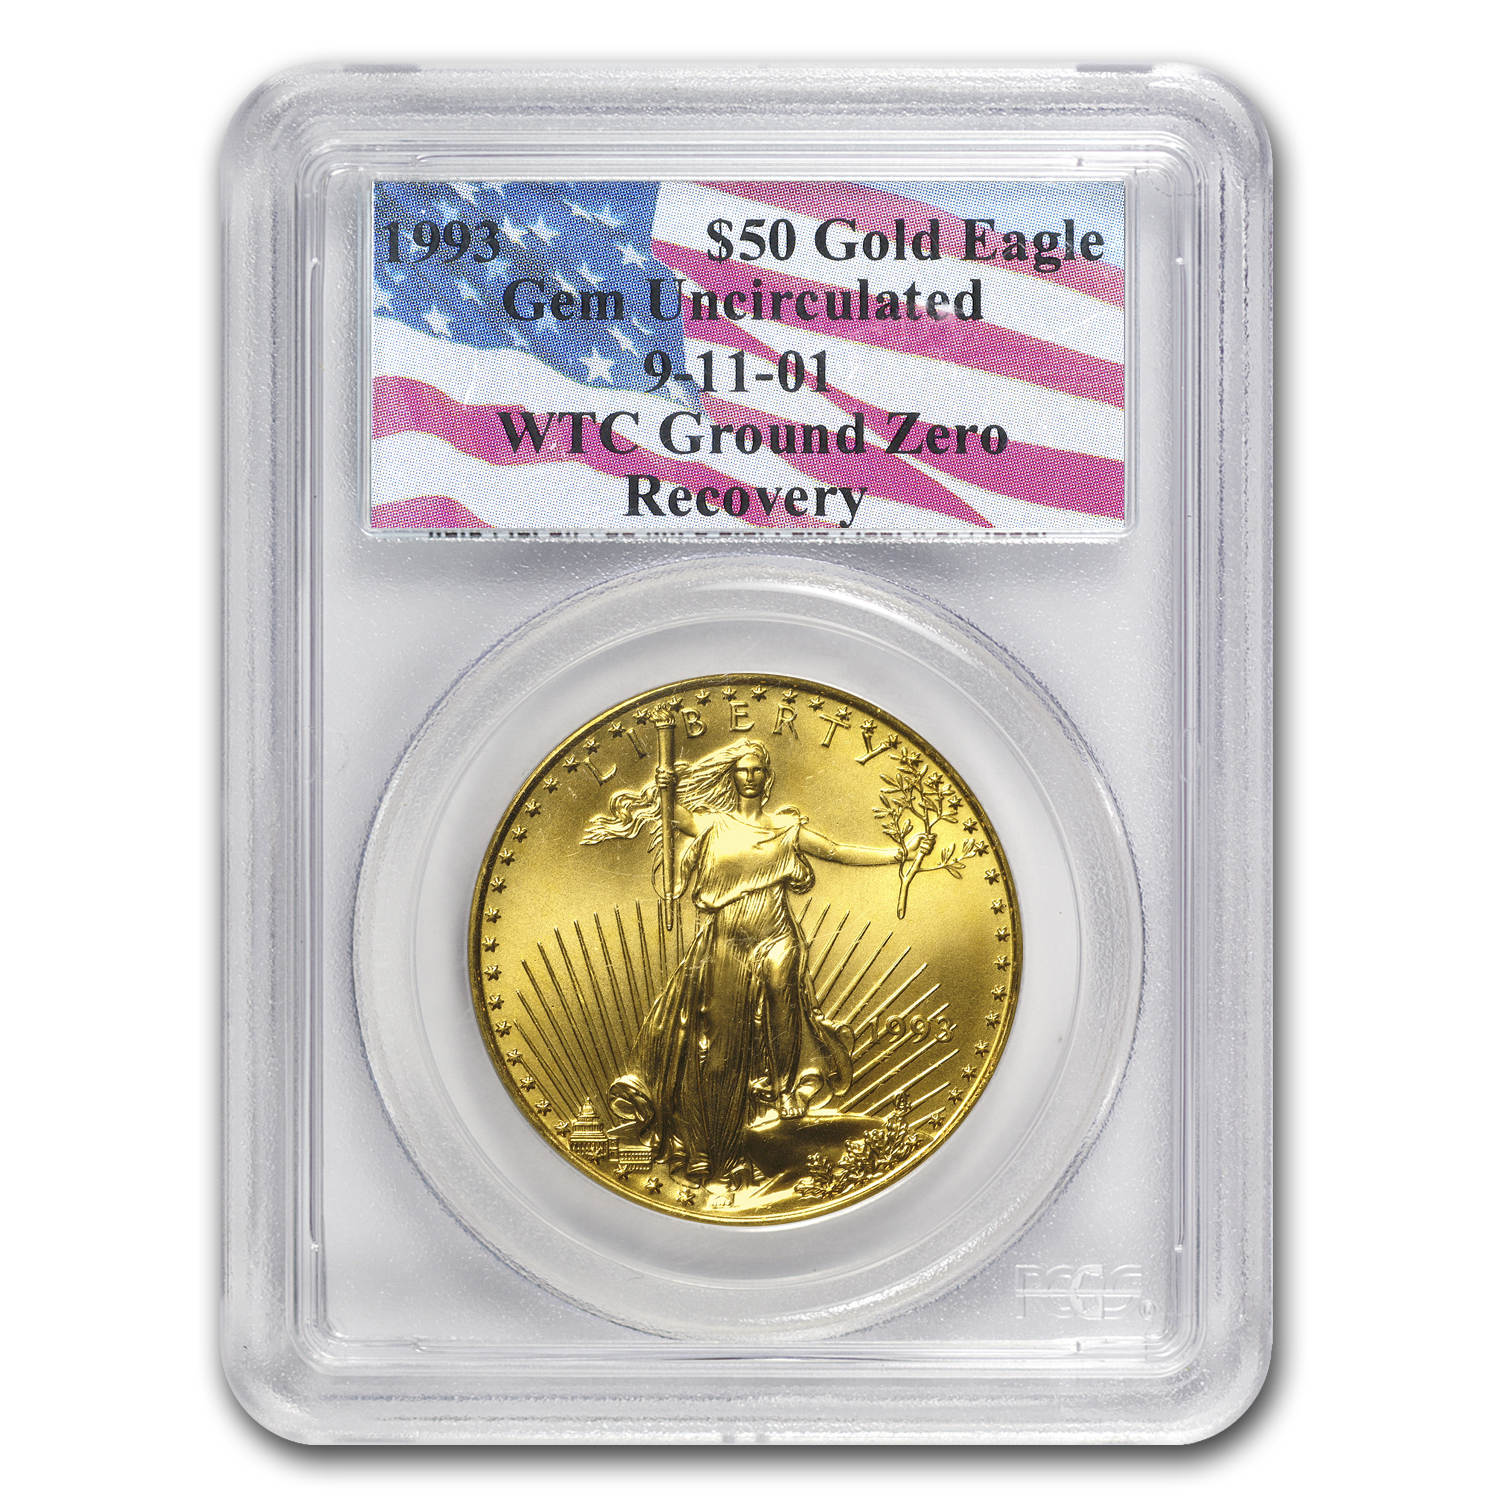 1993 1 oz Gold American Eagle Gem Unc. PCGS (World Trade Center)